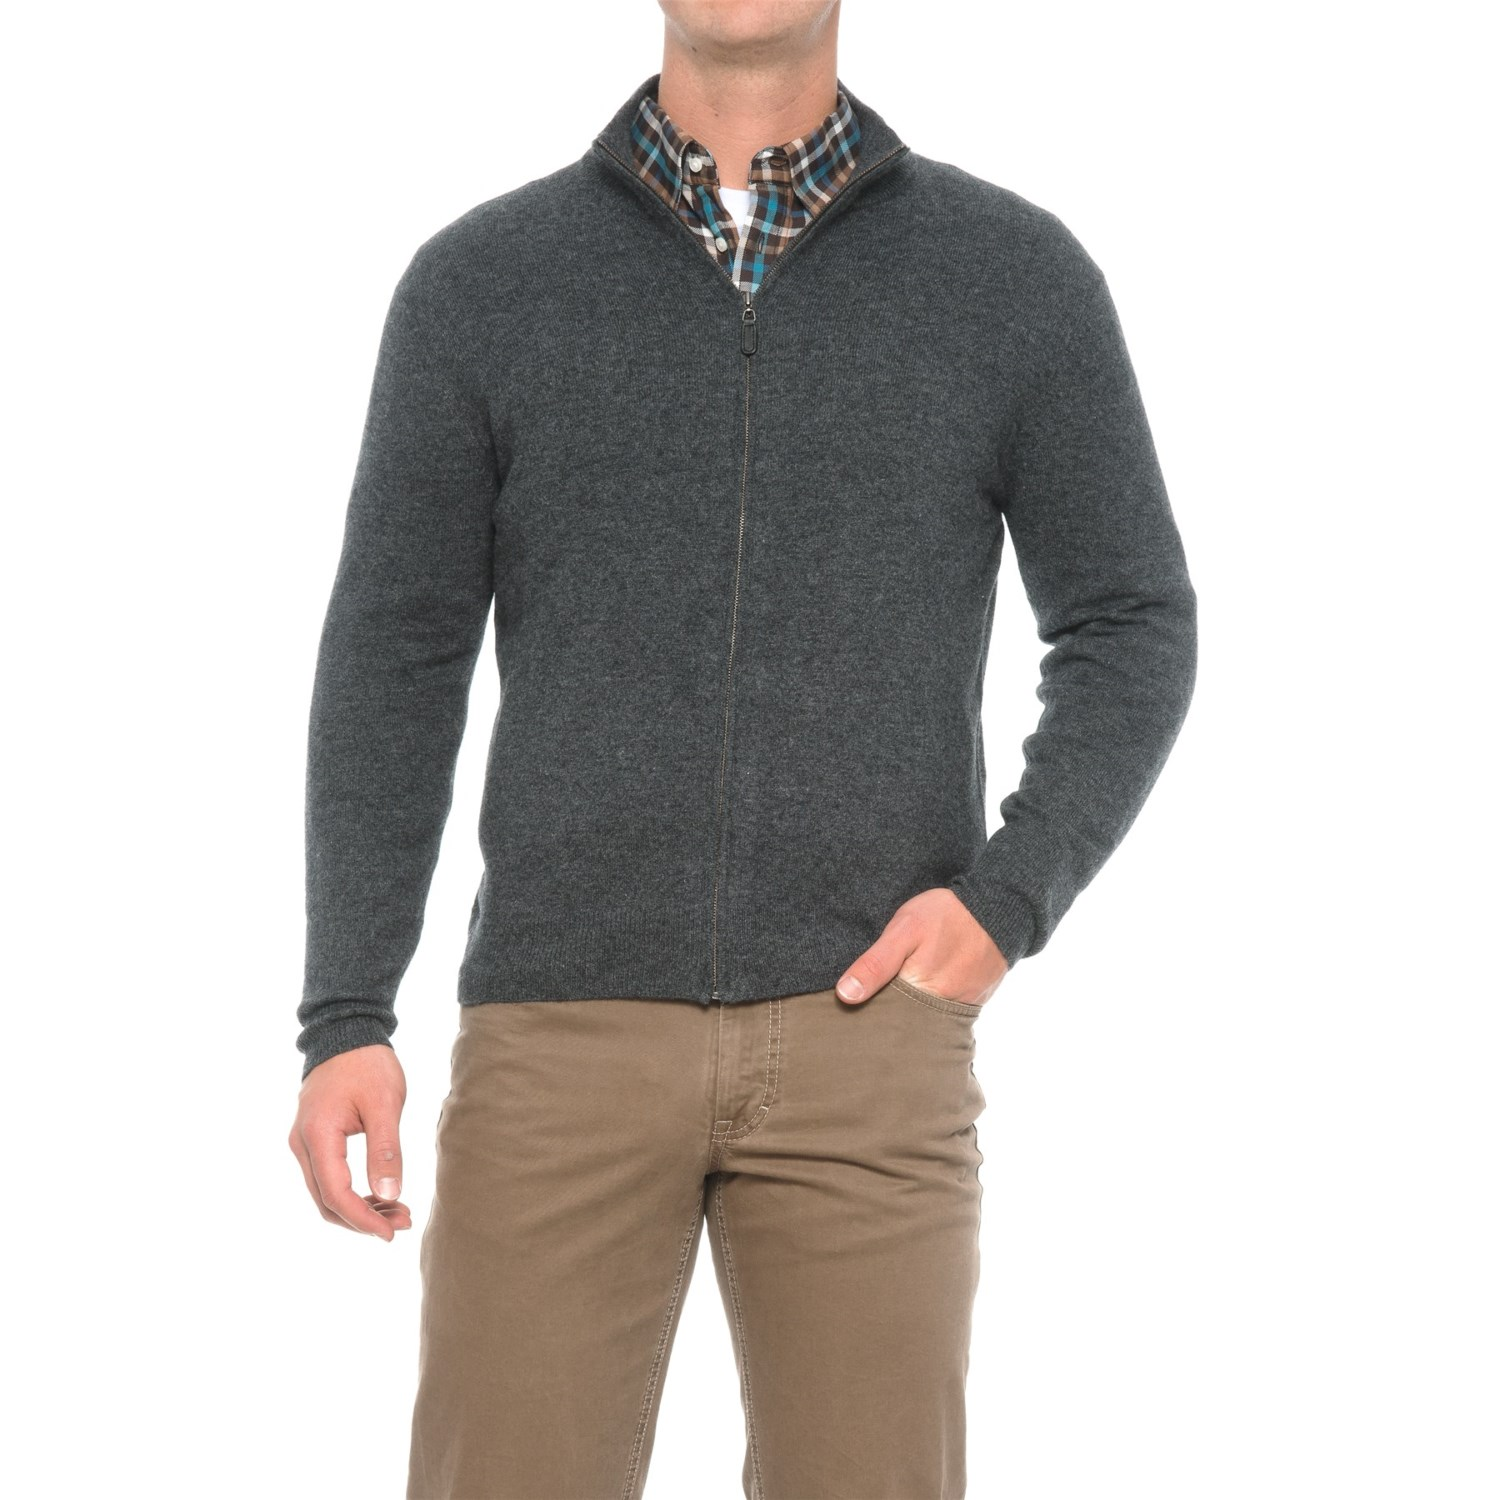 Oliver Perry Cashmere Sweater (For Men) - Save 60%